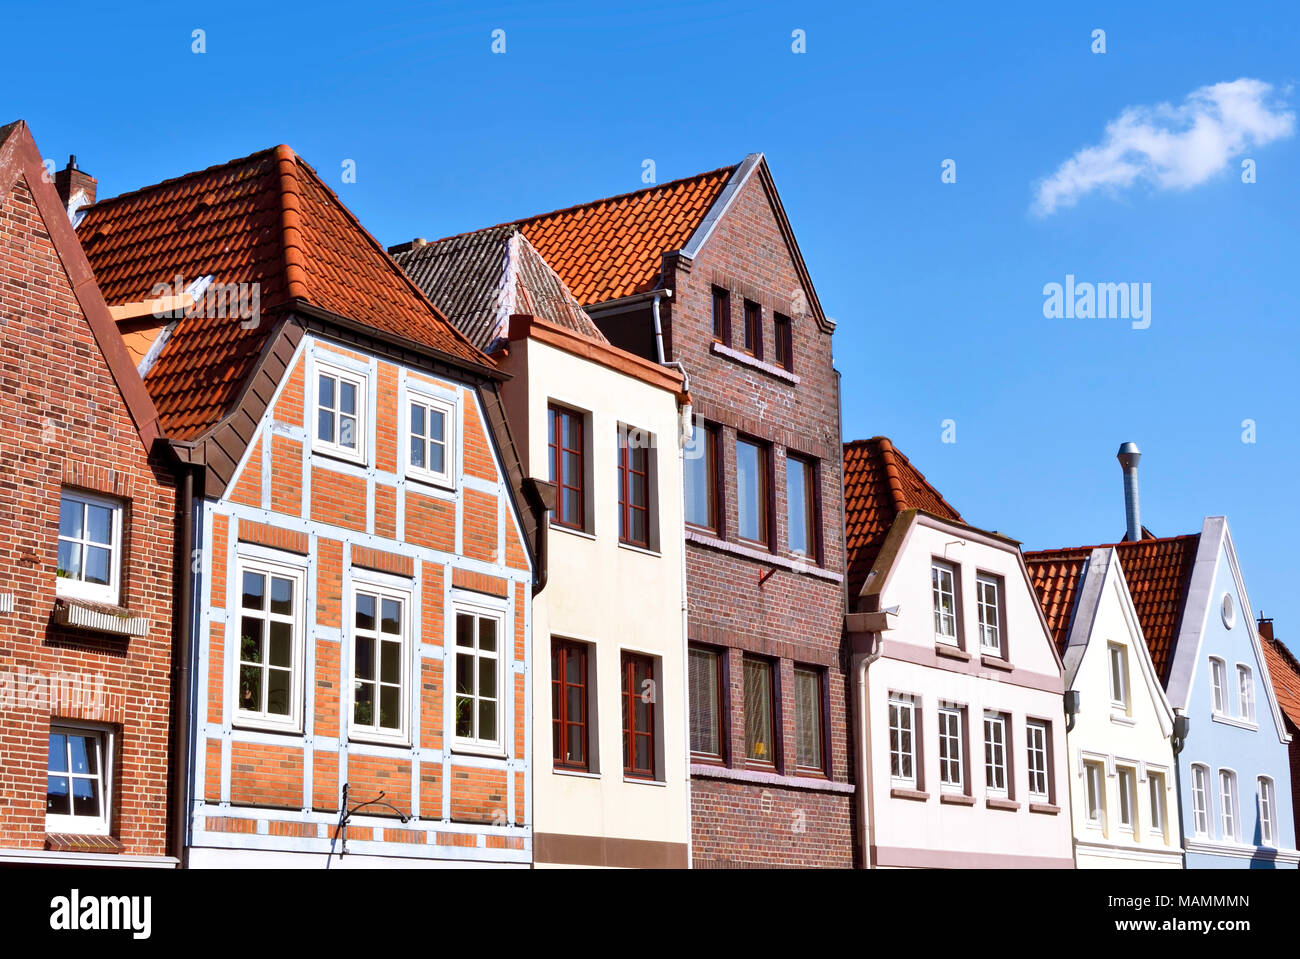 House facades in Buxtehude, northern Germany  Ancient houses or